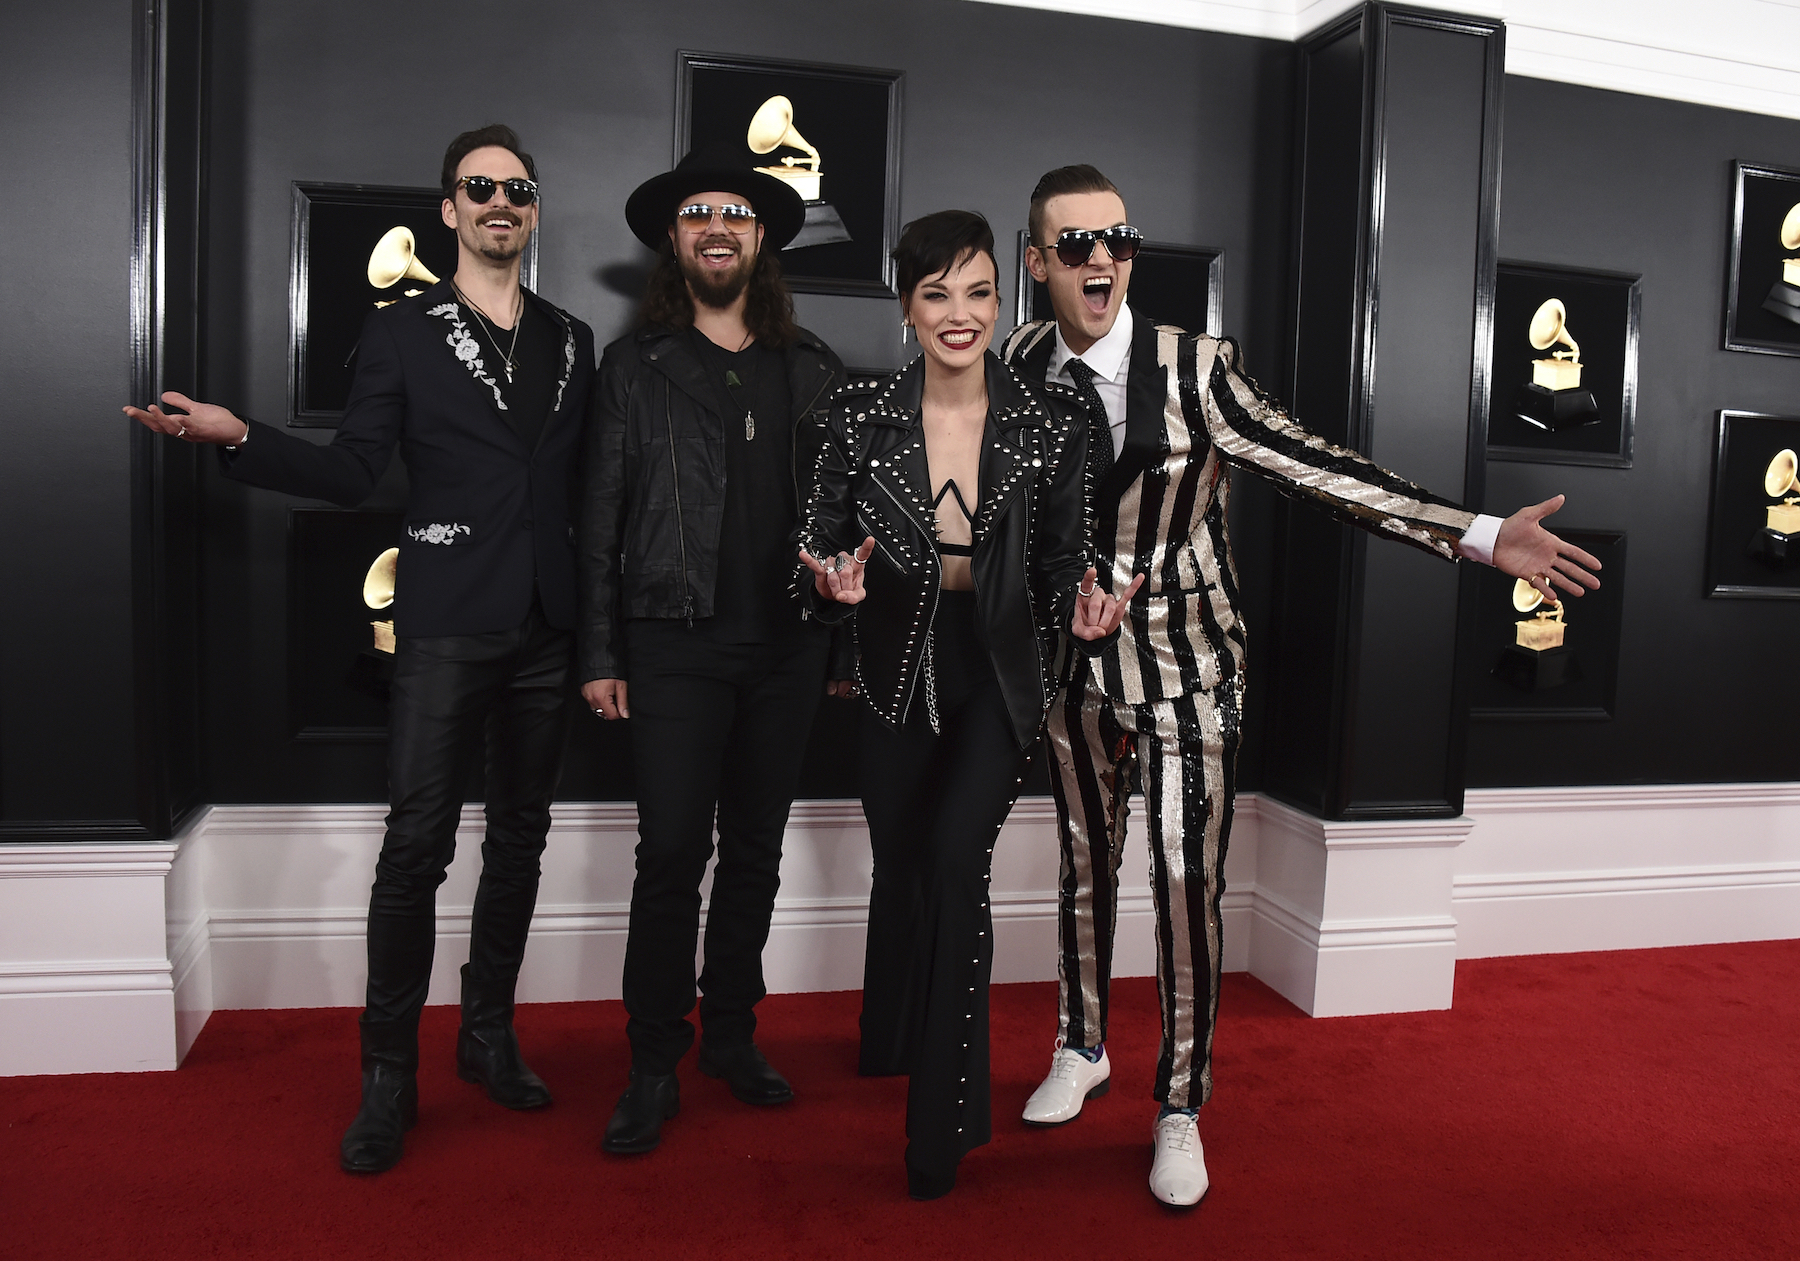 <div class='meta'><div class='origin-logo' data-origin='AP'></div><span class='caption-text' data-credit='Jordan Strauss/Invision/AP'>Josh Smith, from left, Joe Hottinger, Lzzy Hale, and Arejay Hale of Halestorm arrive at the 61st annual Grammy Awards at the Staples Center on Sunday, Feb. 10, 2019.</span></div>